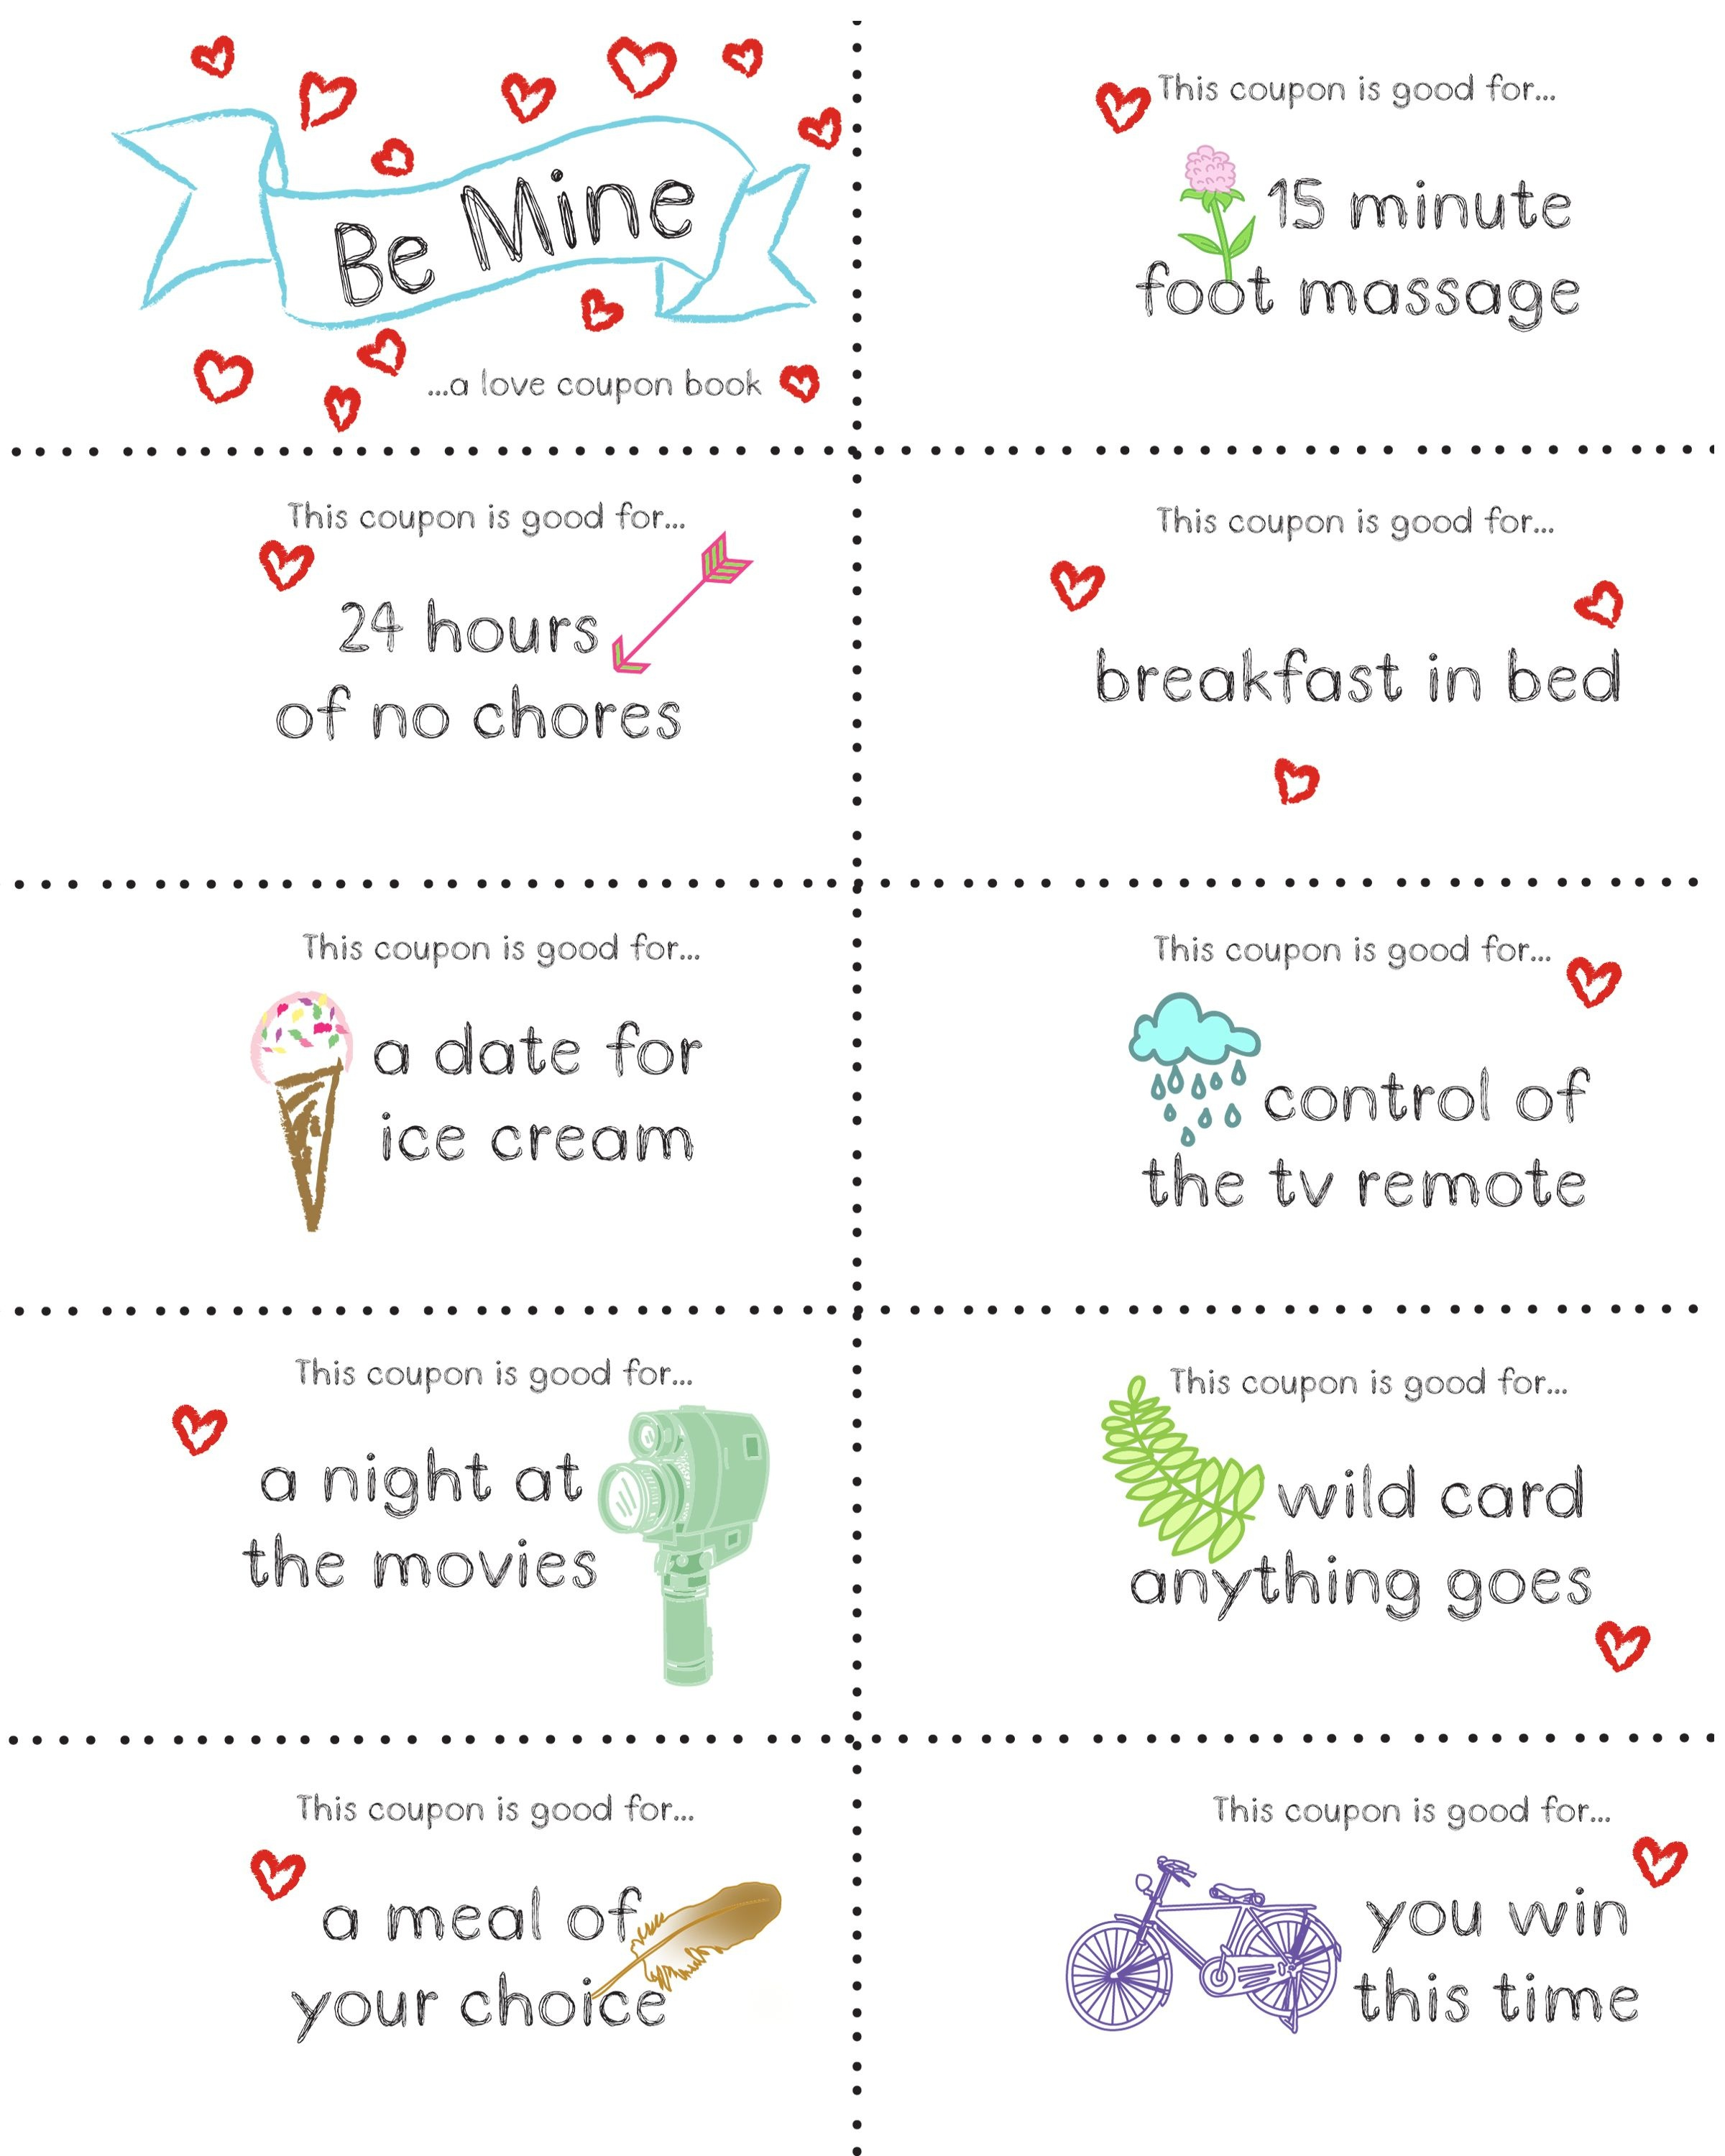 Last Minute Valentine Free Coupon Book Printable | Seasonal | Diy - Free Printable Coupon Book For Boyfriend